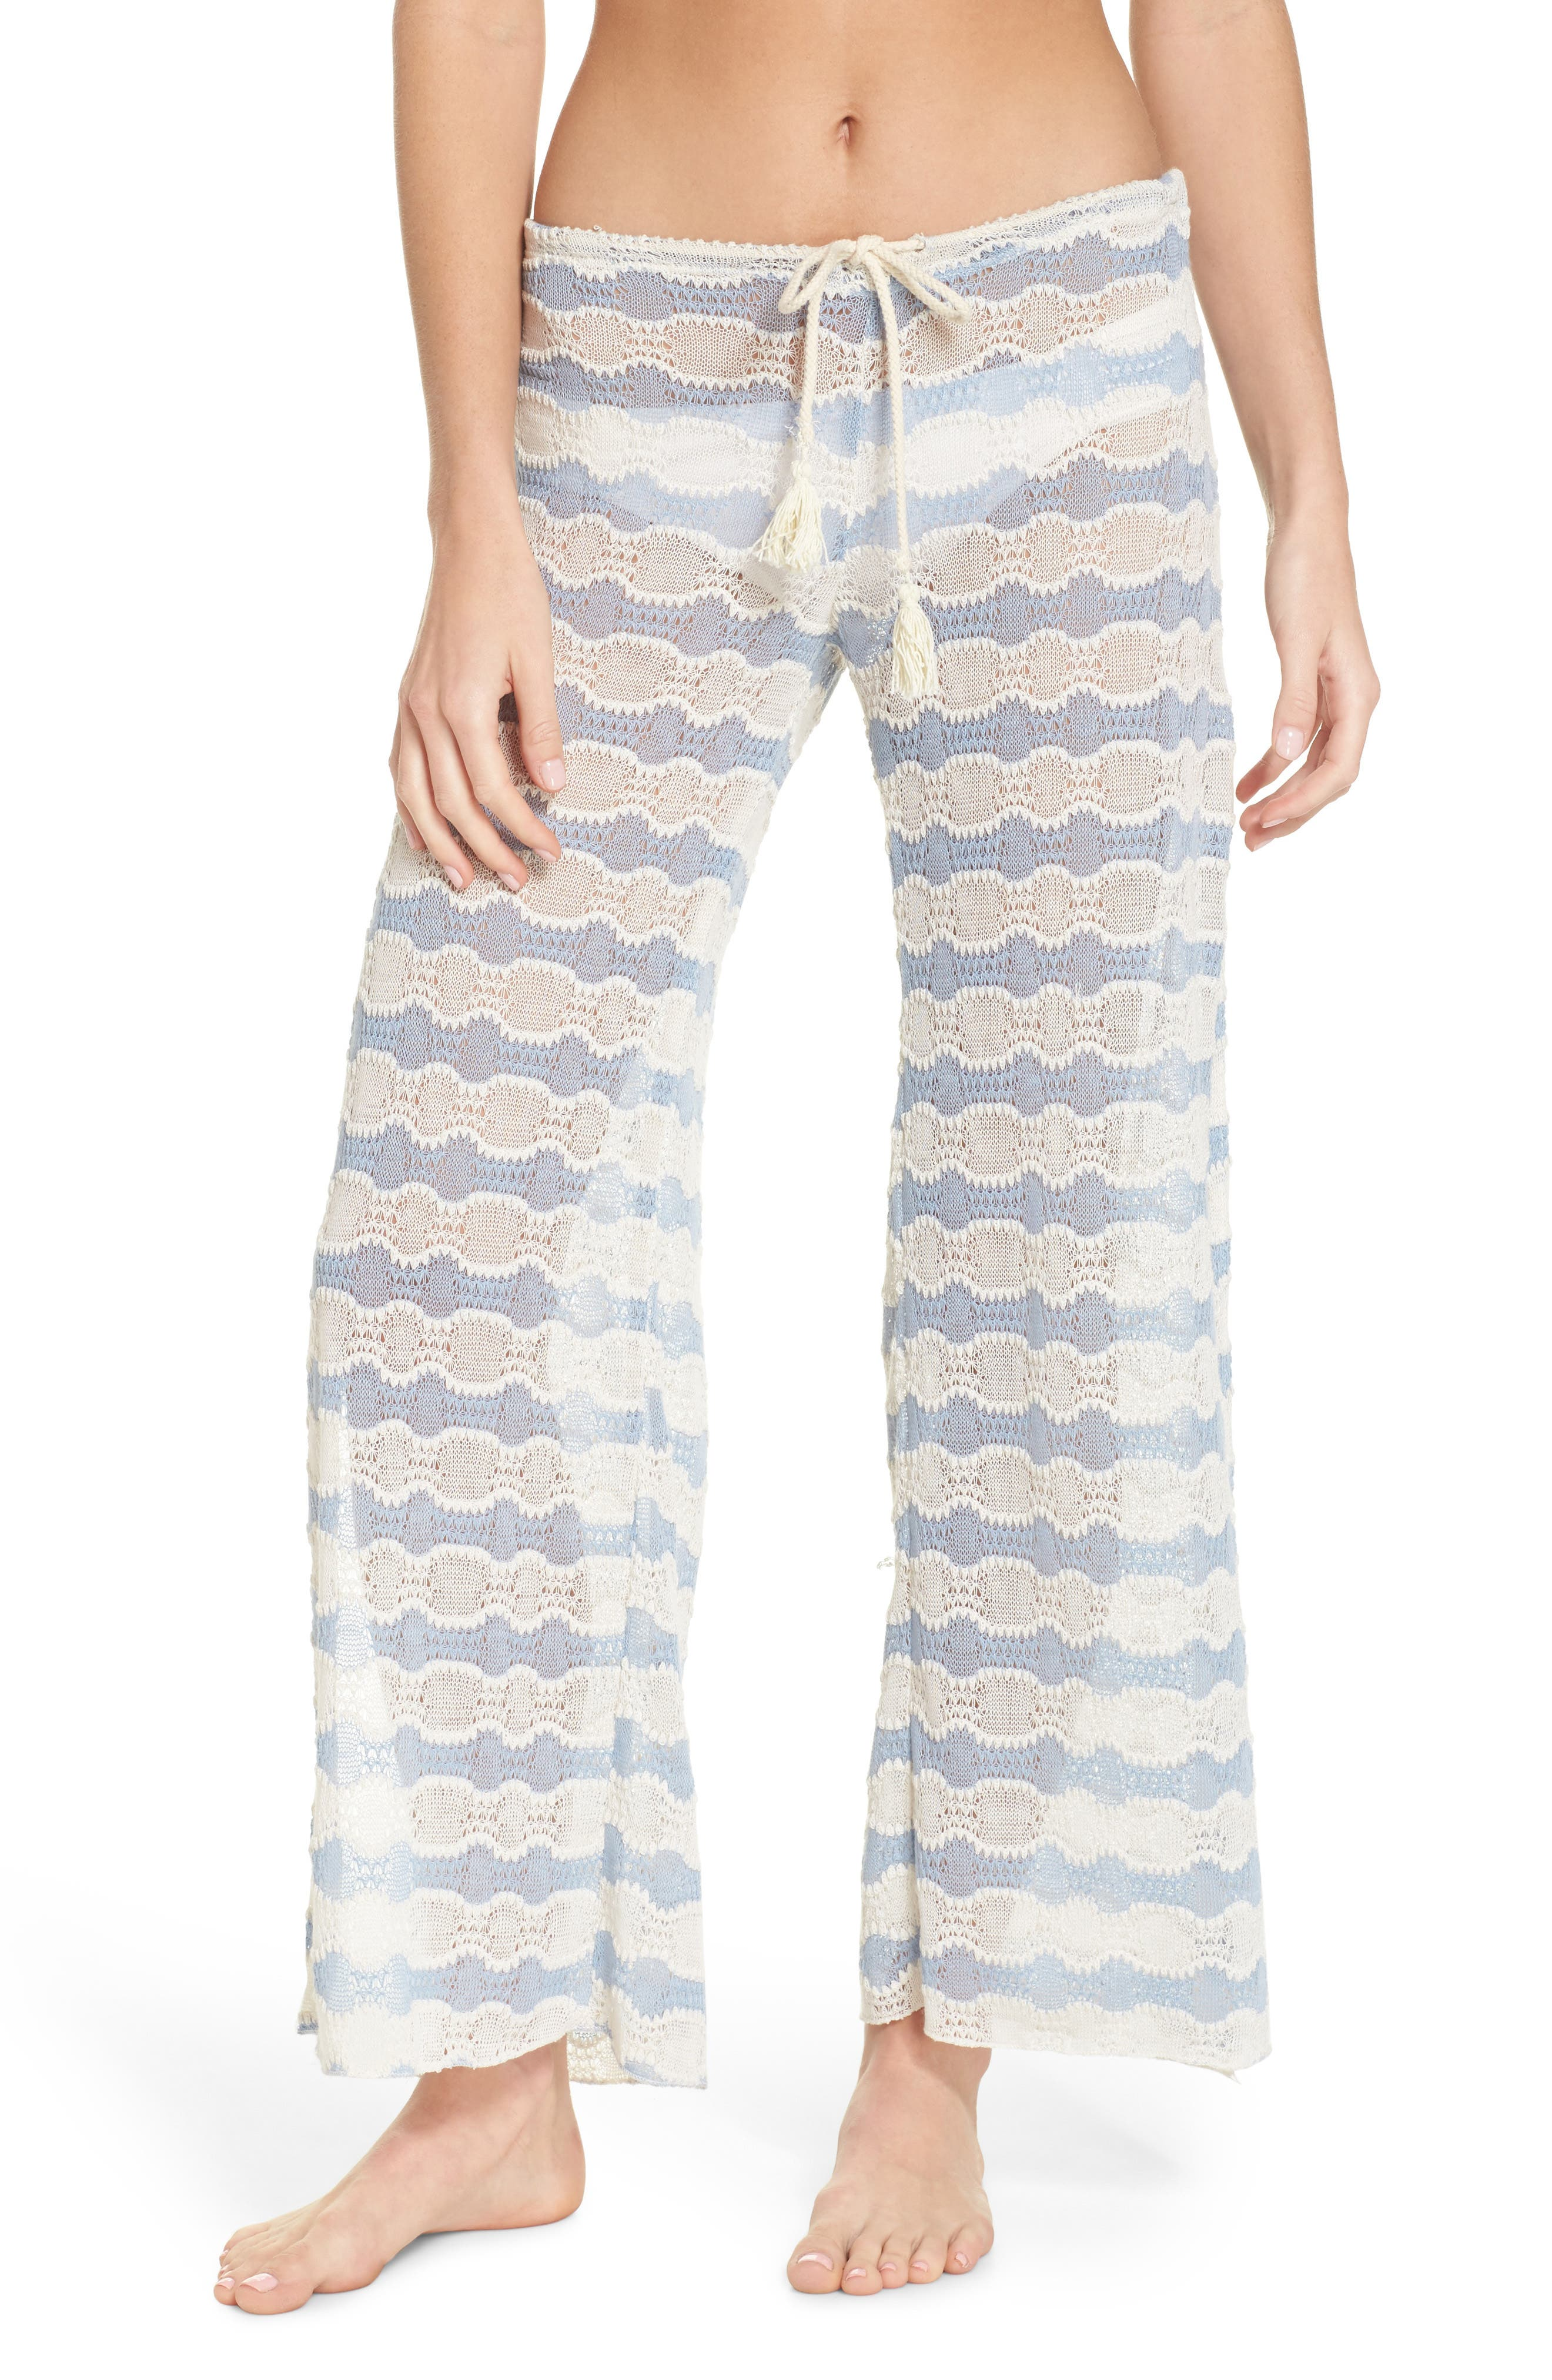 Copa Cabana Crochet Cover-Up Pants,                         Main,                         color, Steel